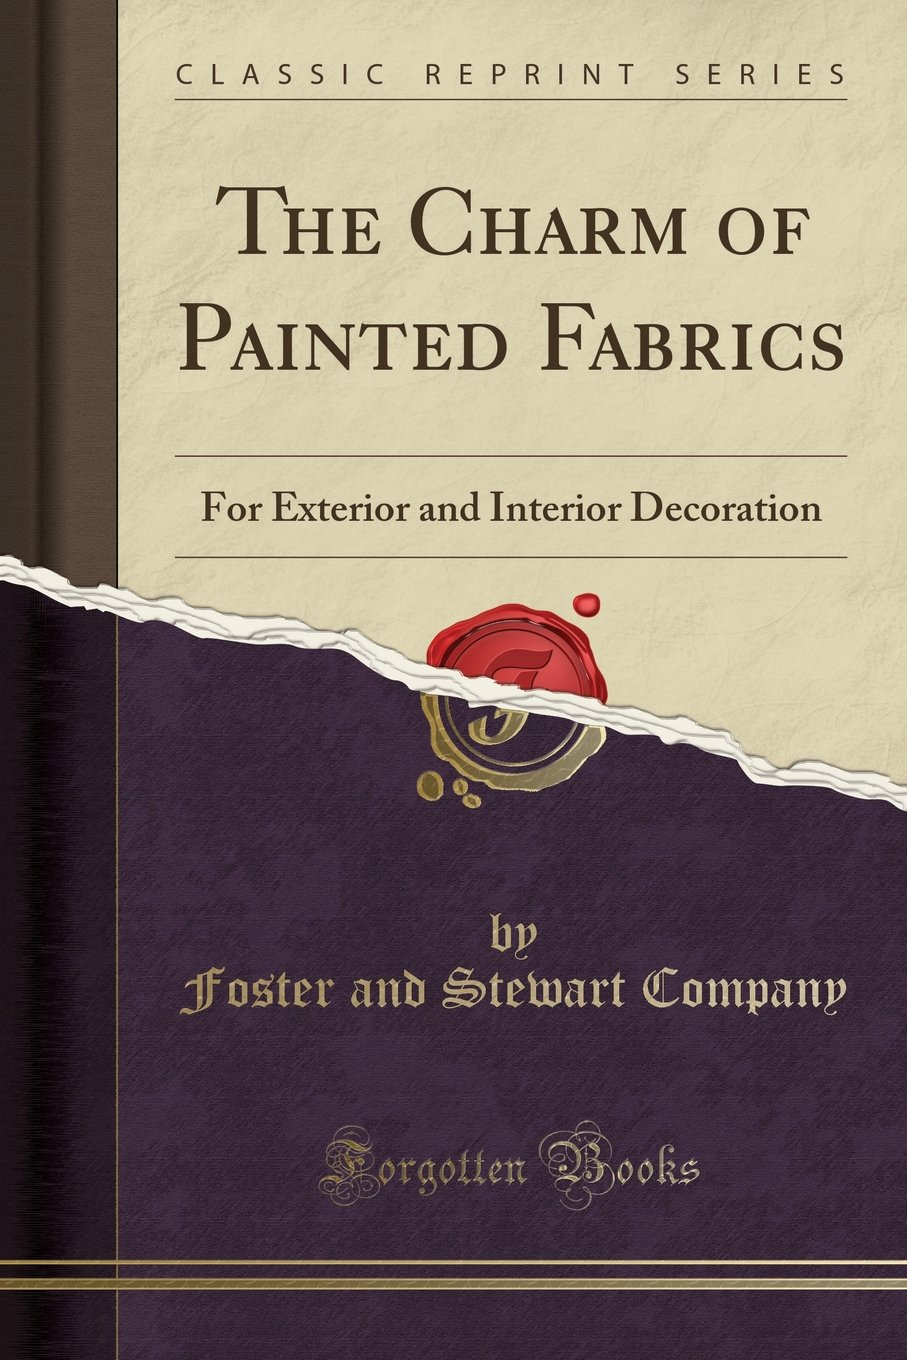 The Charm Of Painted Fabrics For Exterior And Interior Decoration Classic Reprint Amazon De Company Foster And Stewart Fremdsprachige Bucher